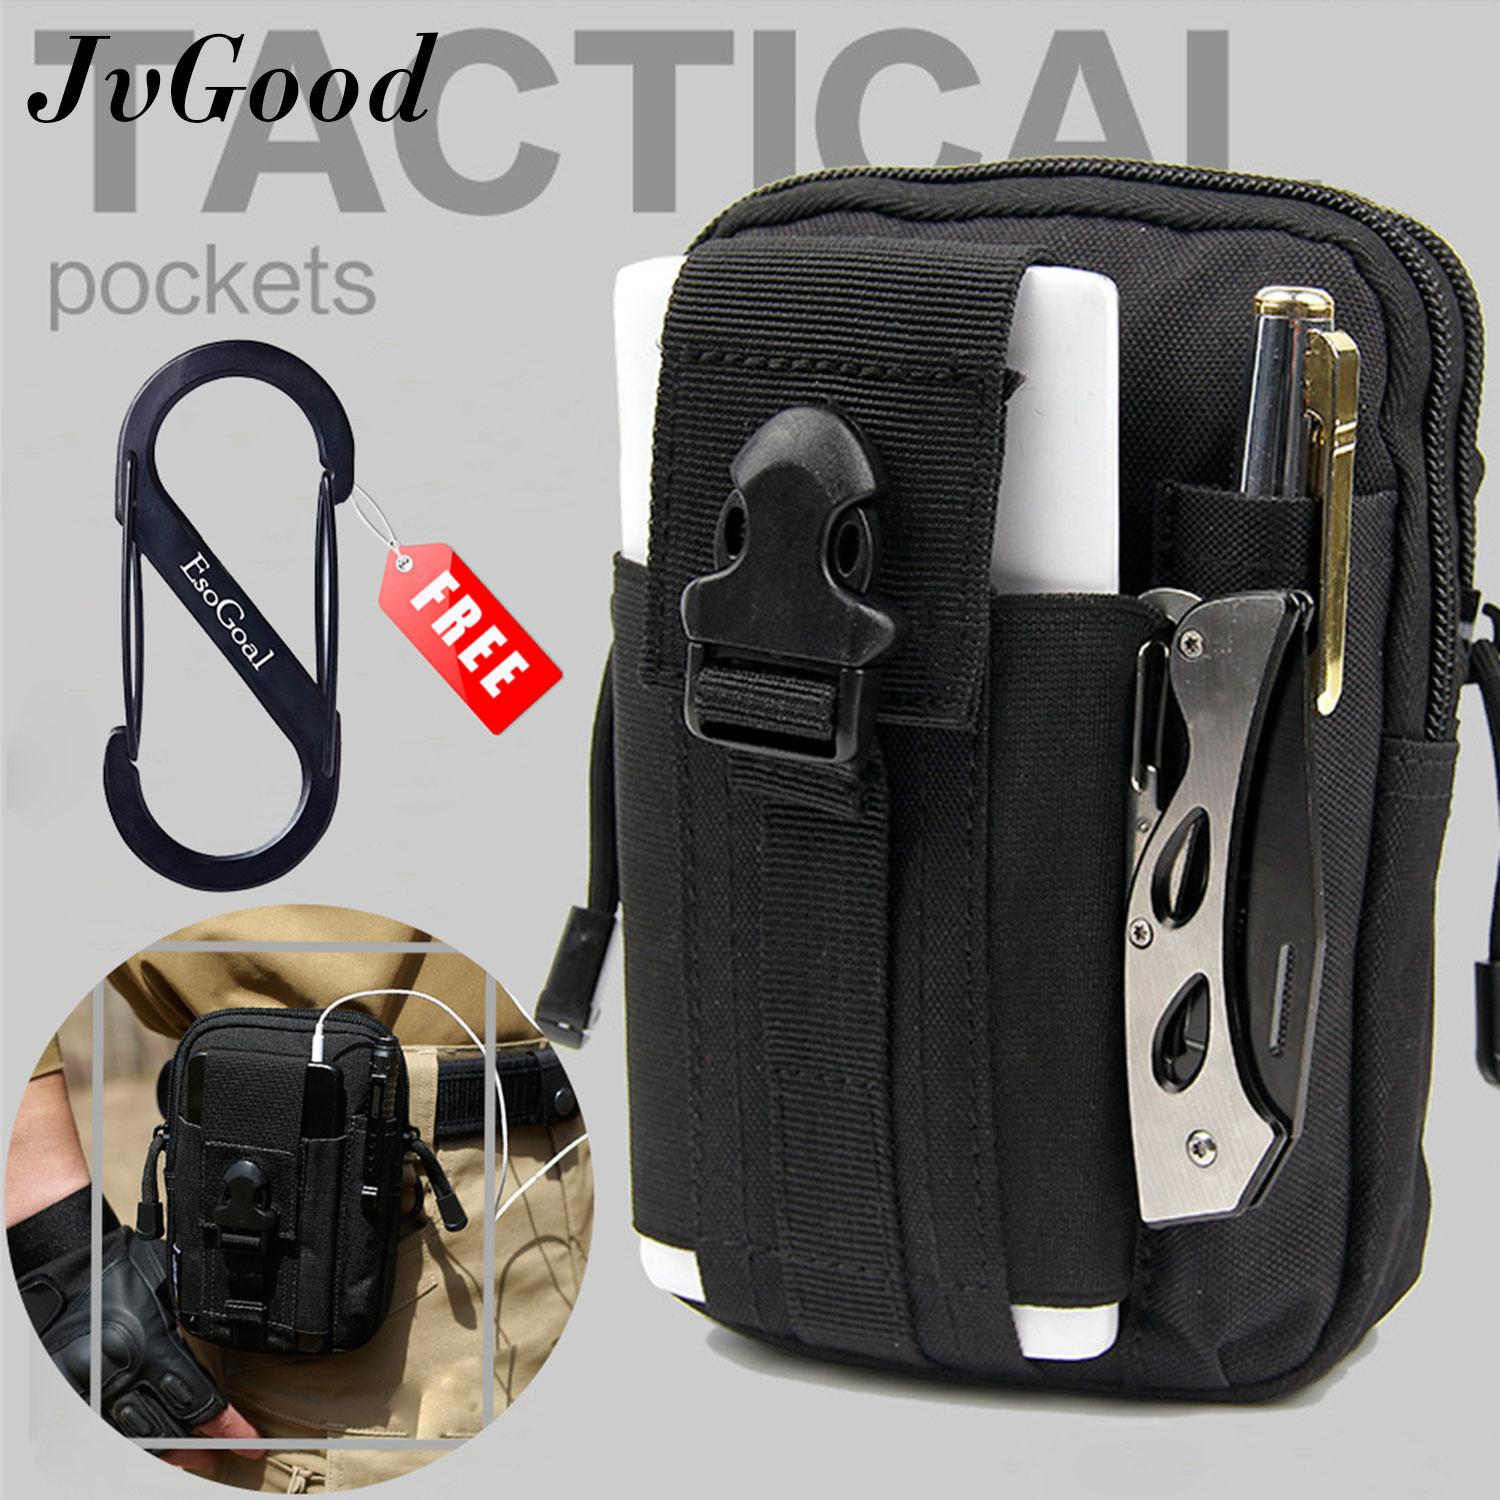 Jvgood Tactical Molle Pouch, Edc Utility Waist Belt Gadget Gear Bag Tool Organizer With Cell Phone Holster Holder (black) By Jvgood.